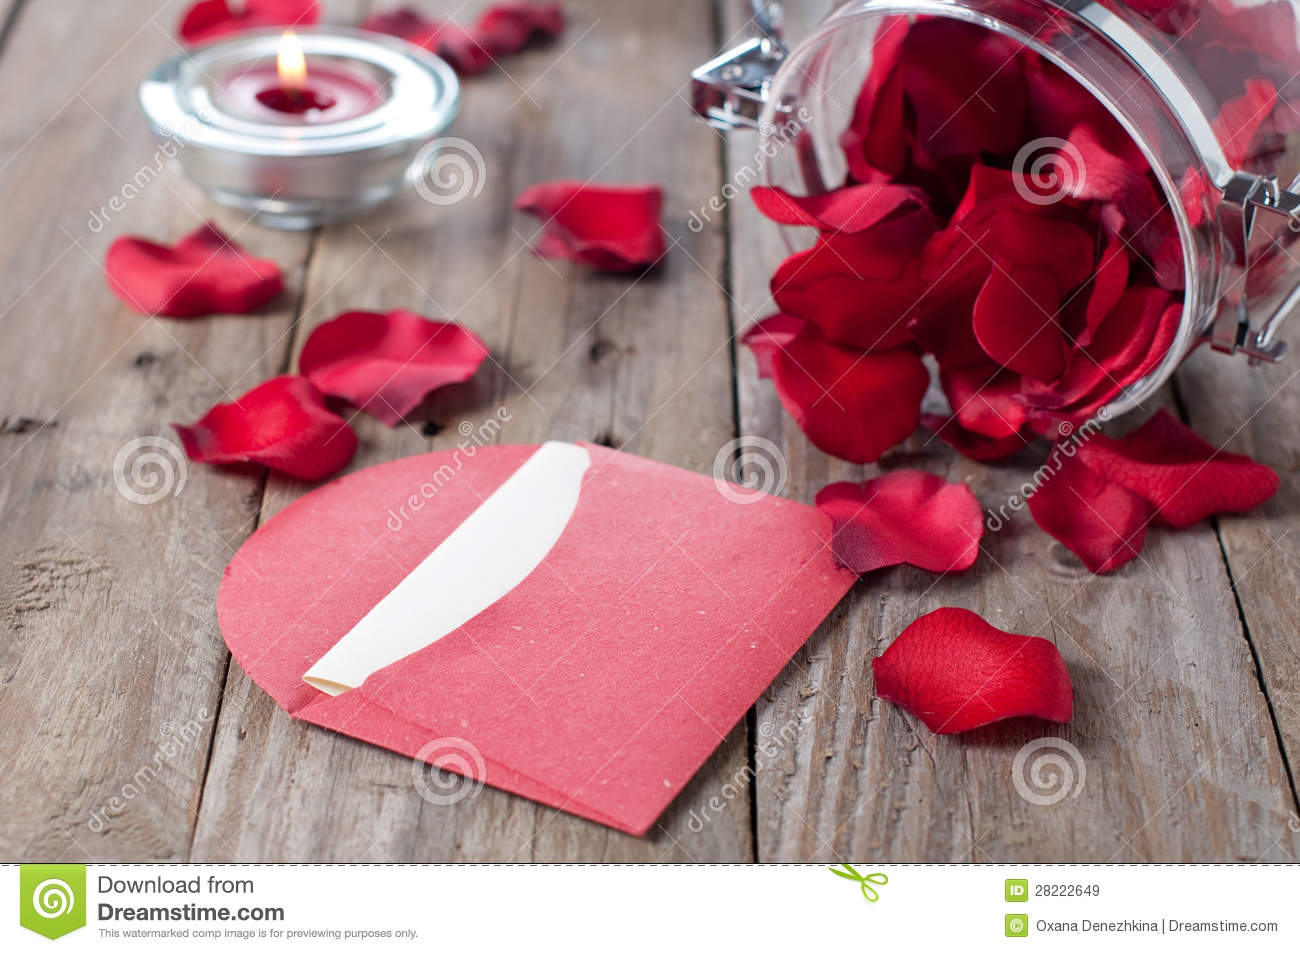 Romantic letter with petals